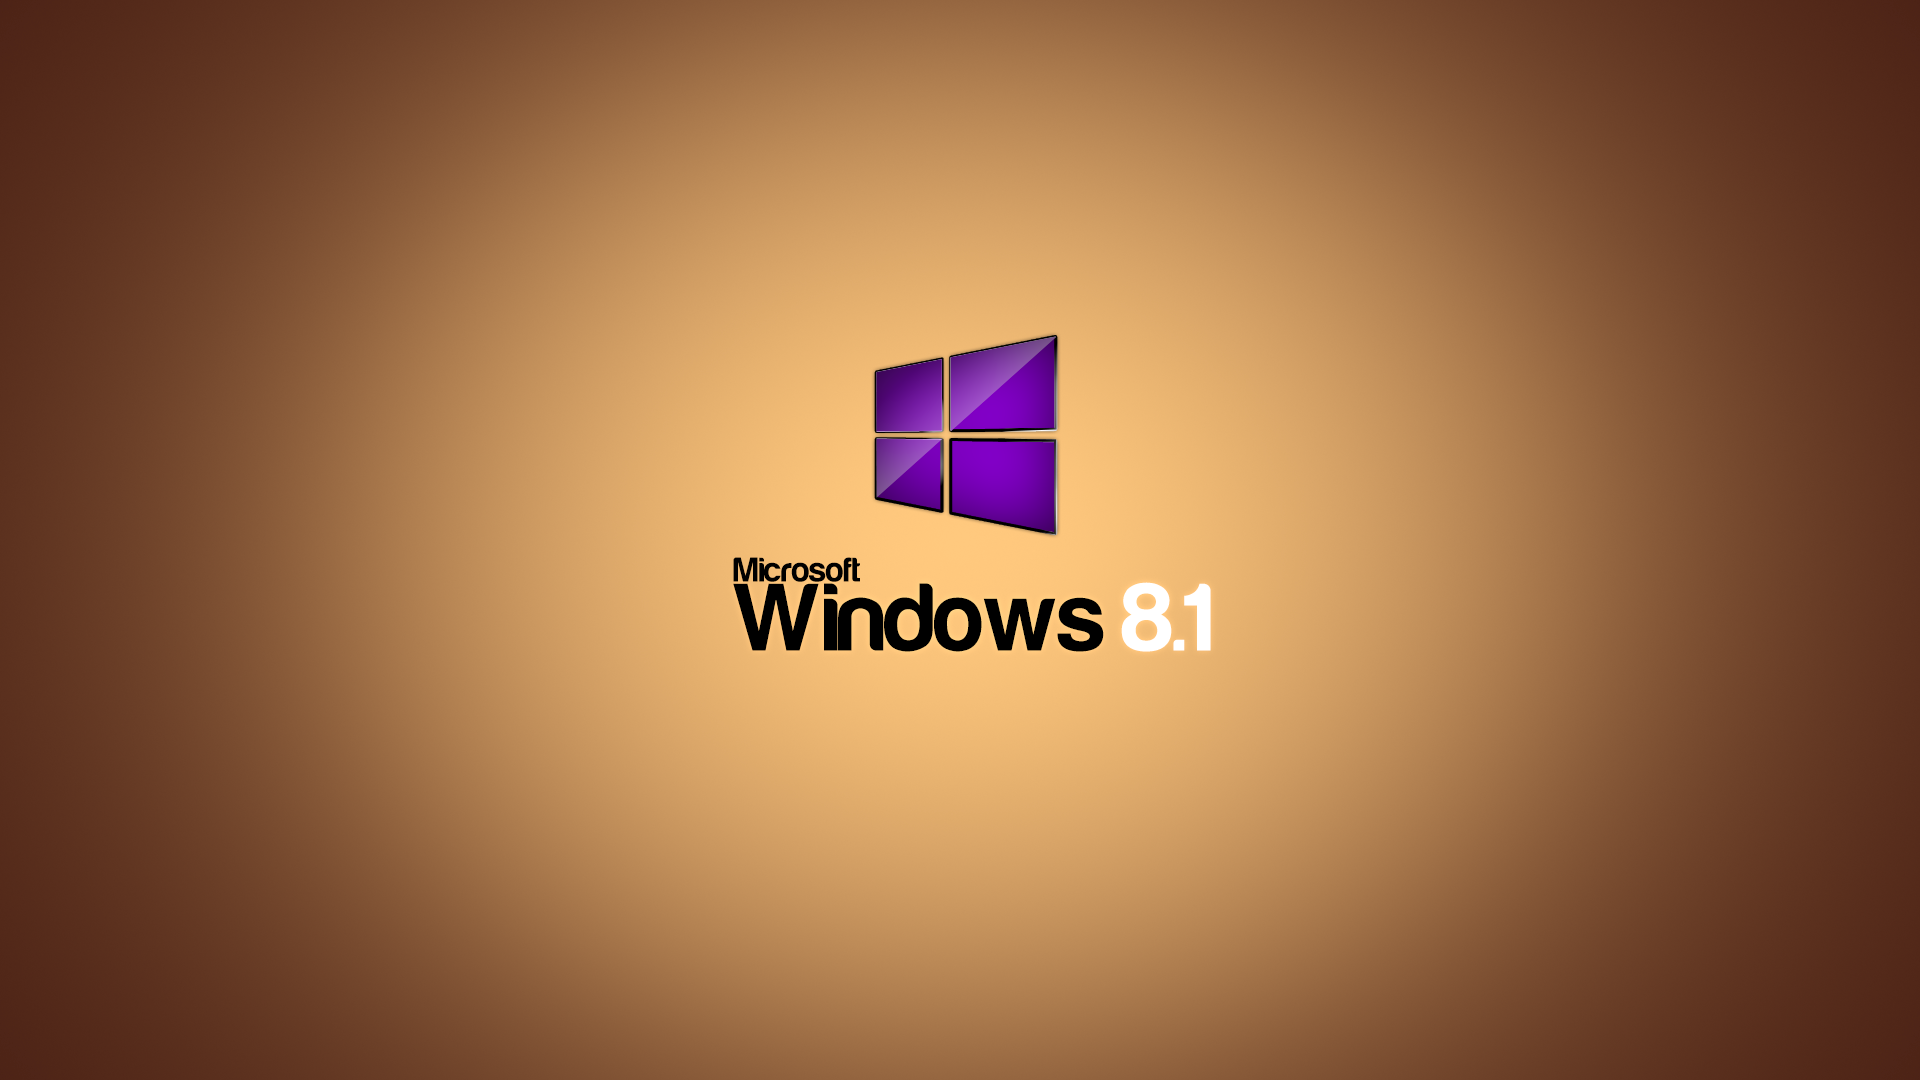 windows 81 hd wallpapers 42 wallpapers � hd wallpapers